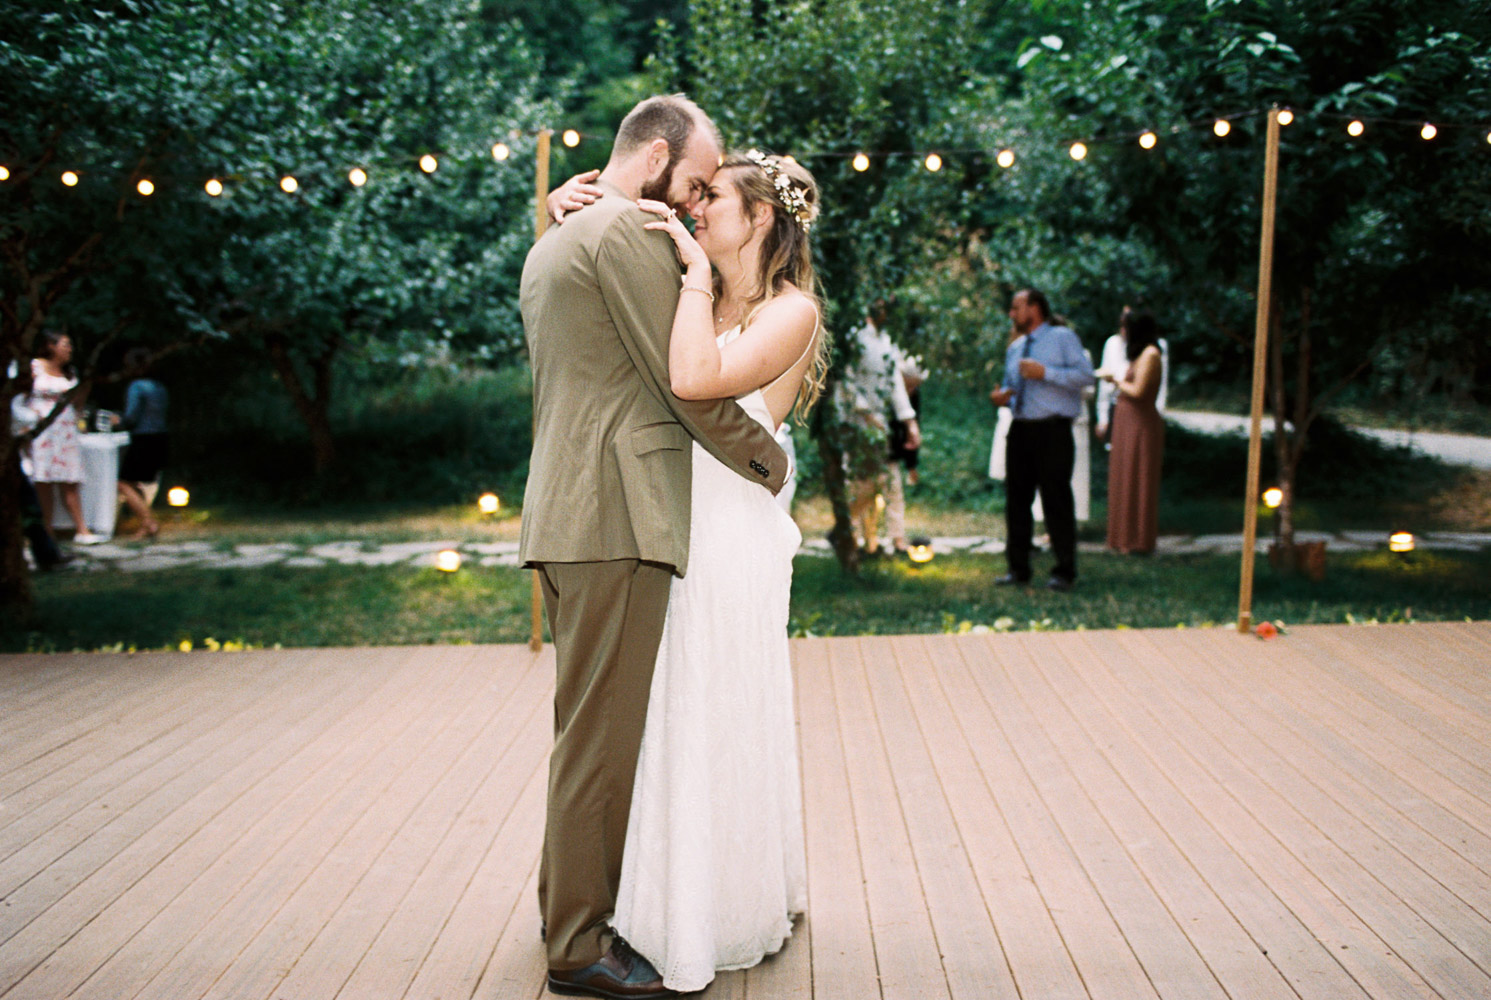 First Dance at Wellspring Spa Wedding at Mt Rainier captured by Anna Peters Seattle Wedding Photographer